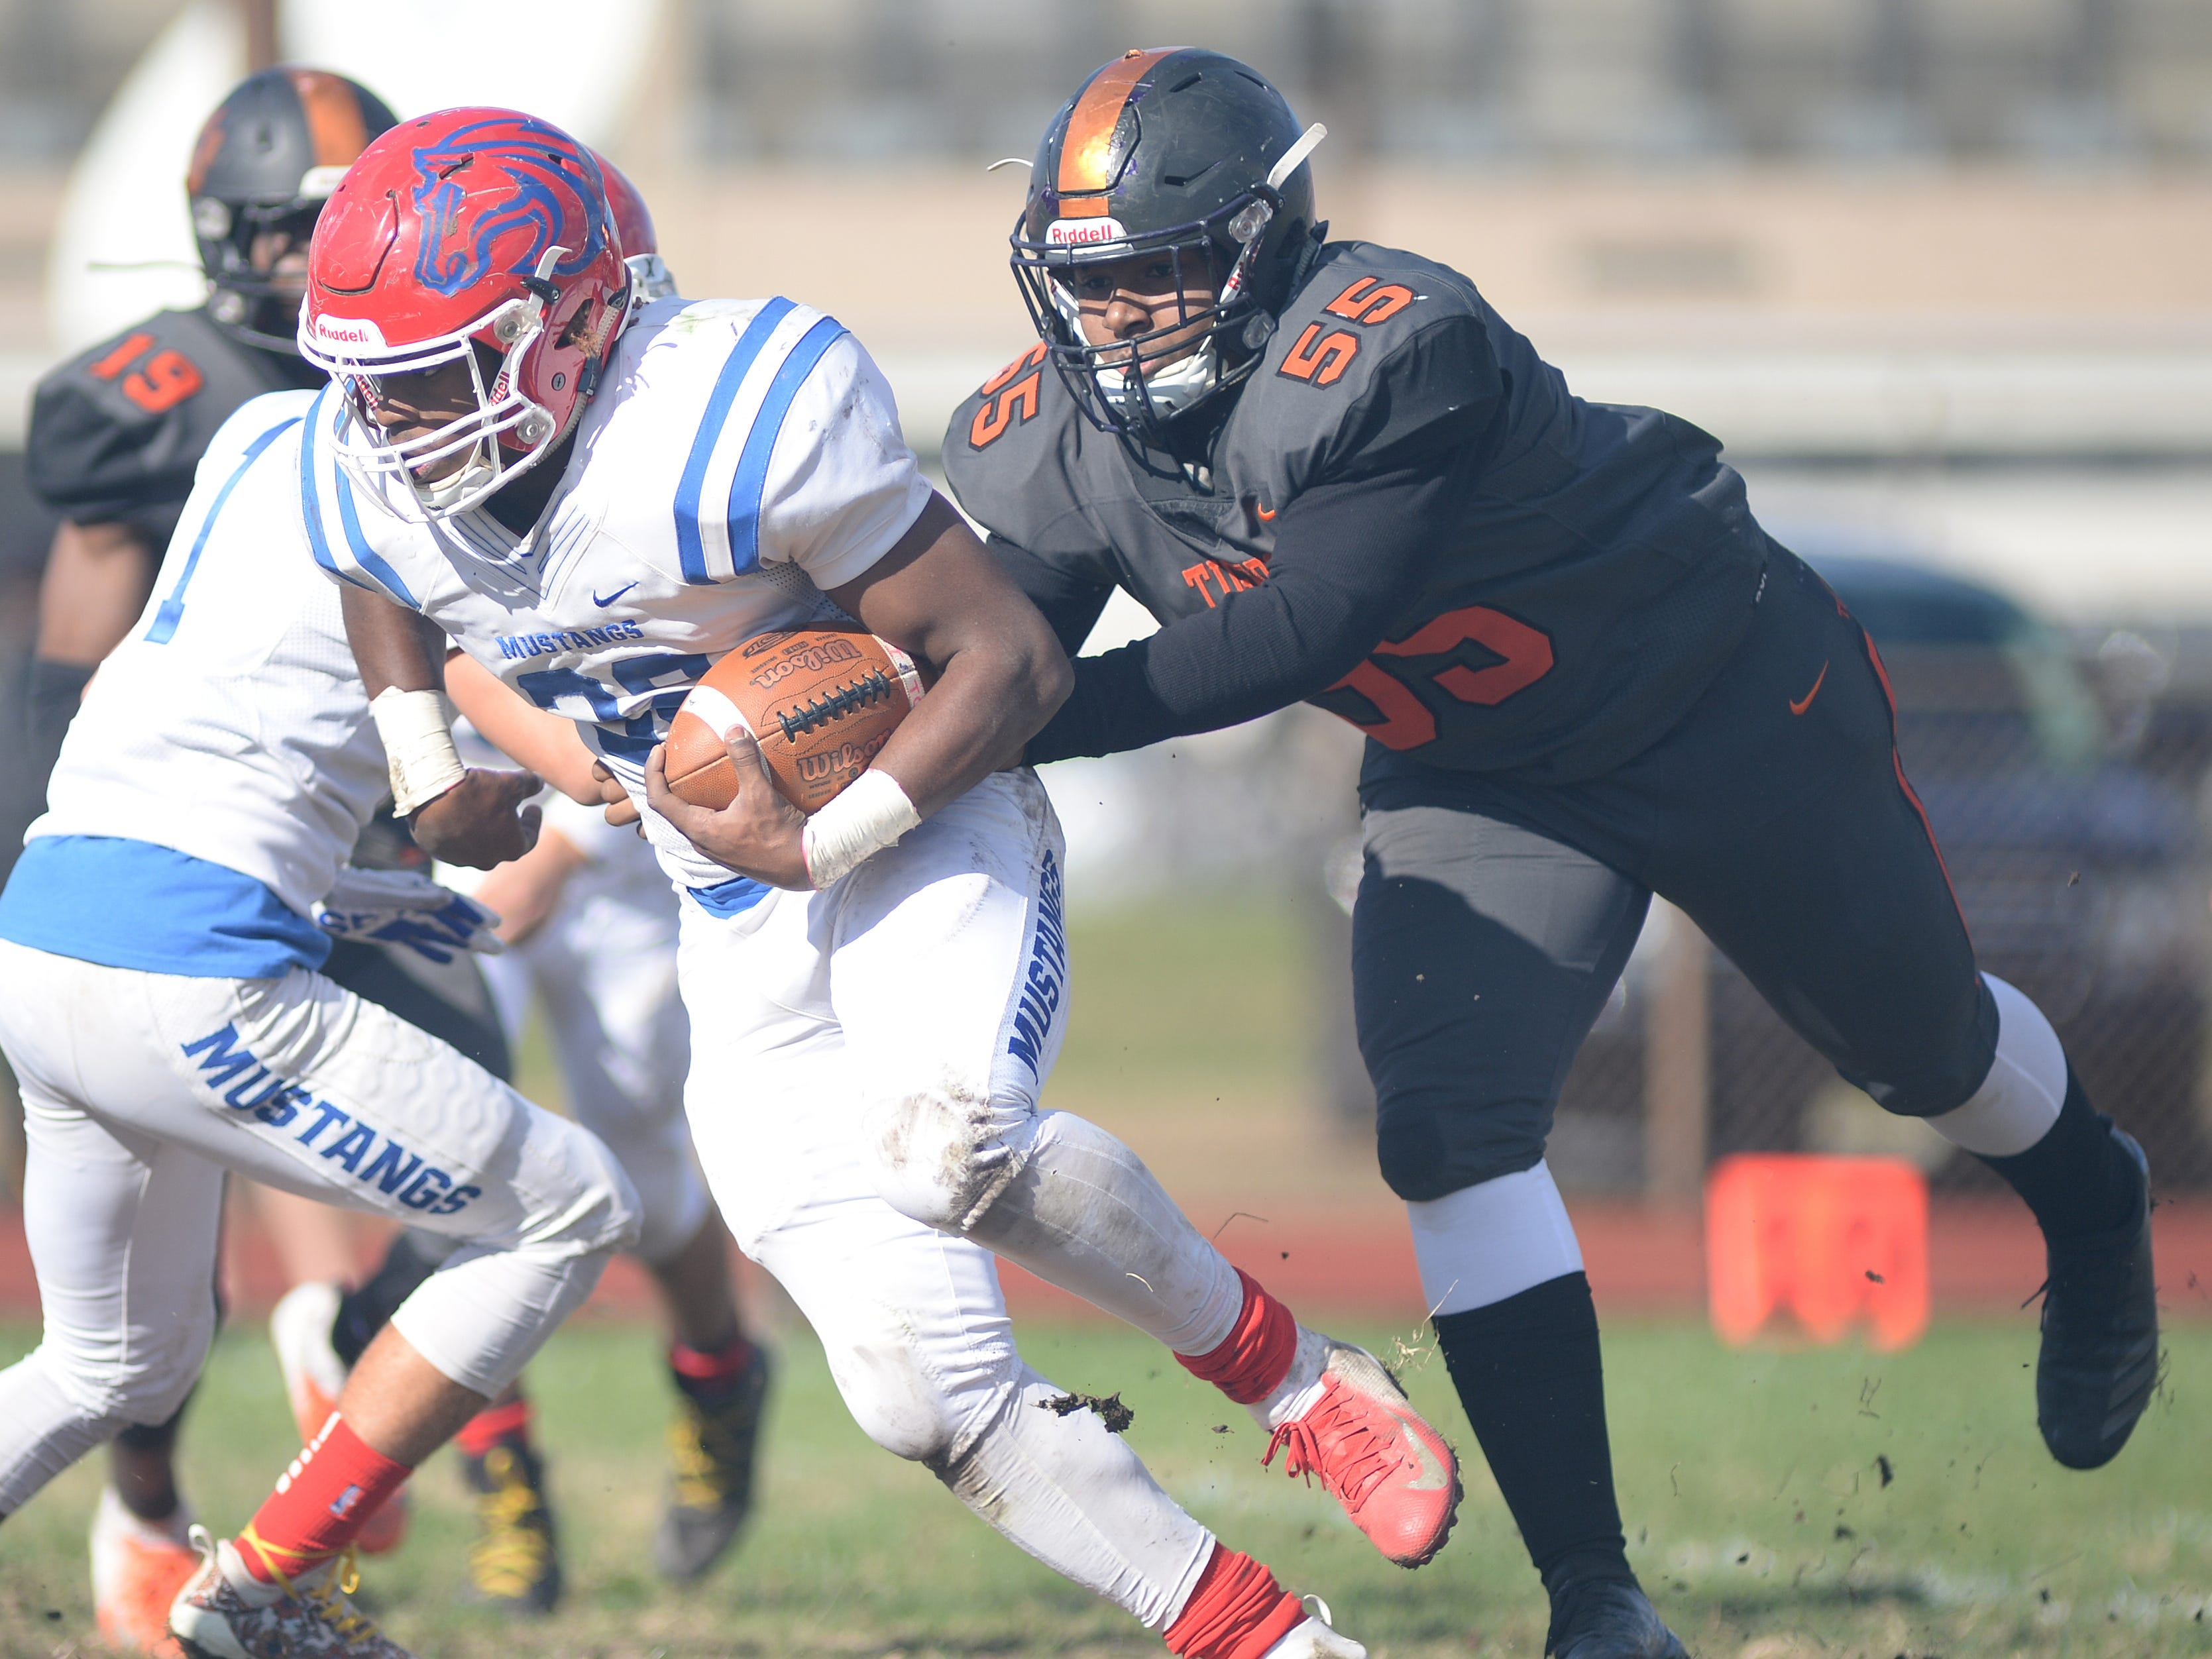 Triton's Eric Staton carries the ball against Woodrow Wilson during Saturday's South Jersey Group 3 first round game at Woodrow Wilson High School, Nov. 3, 2018.